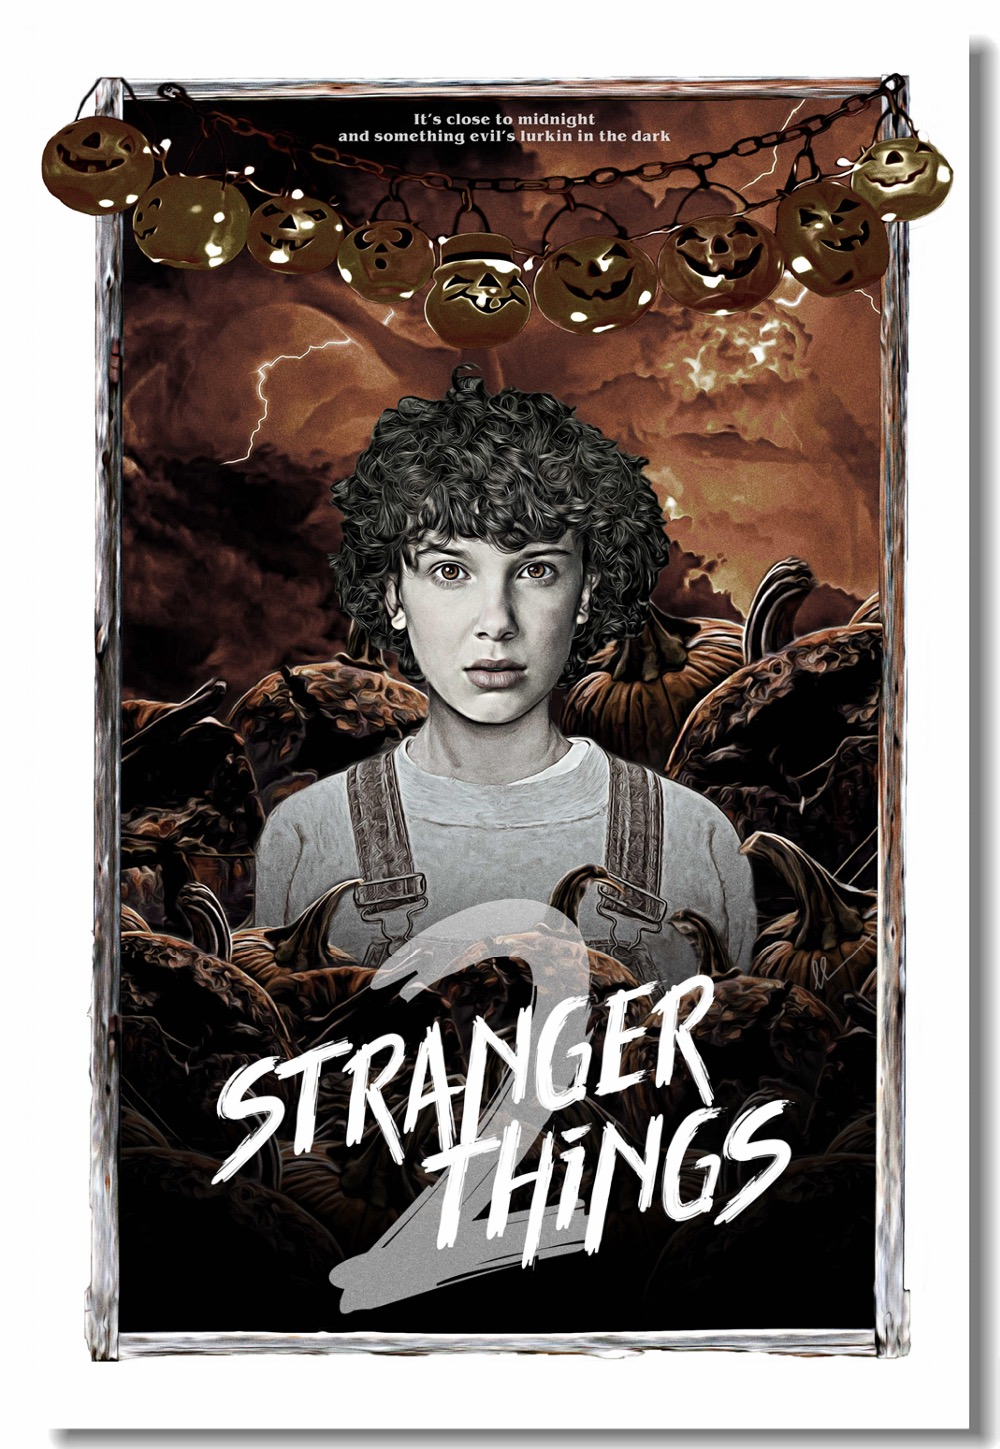 Us 5 19 35 offcustom canvas wall mural stranger things poster stranger things wallpaper winona ryder wall sticker cafe bar decorations 0238 in